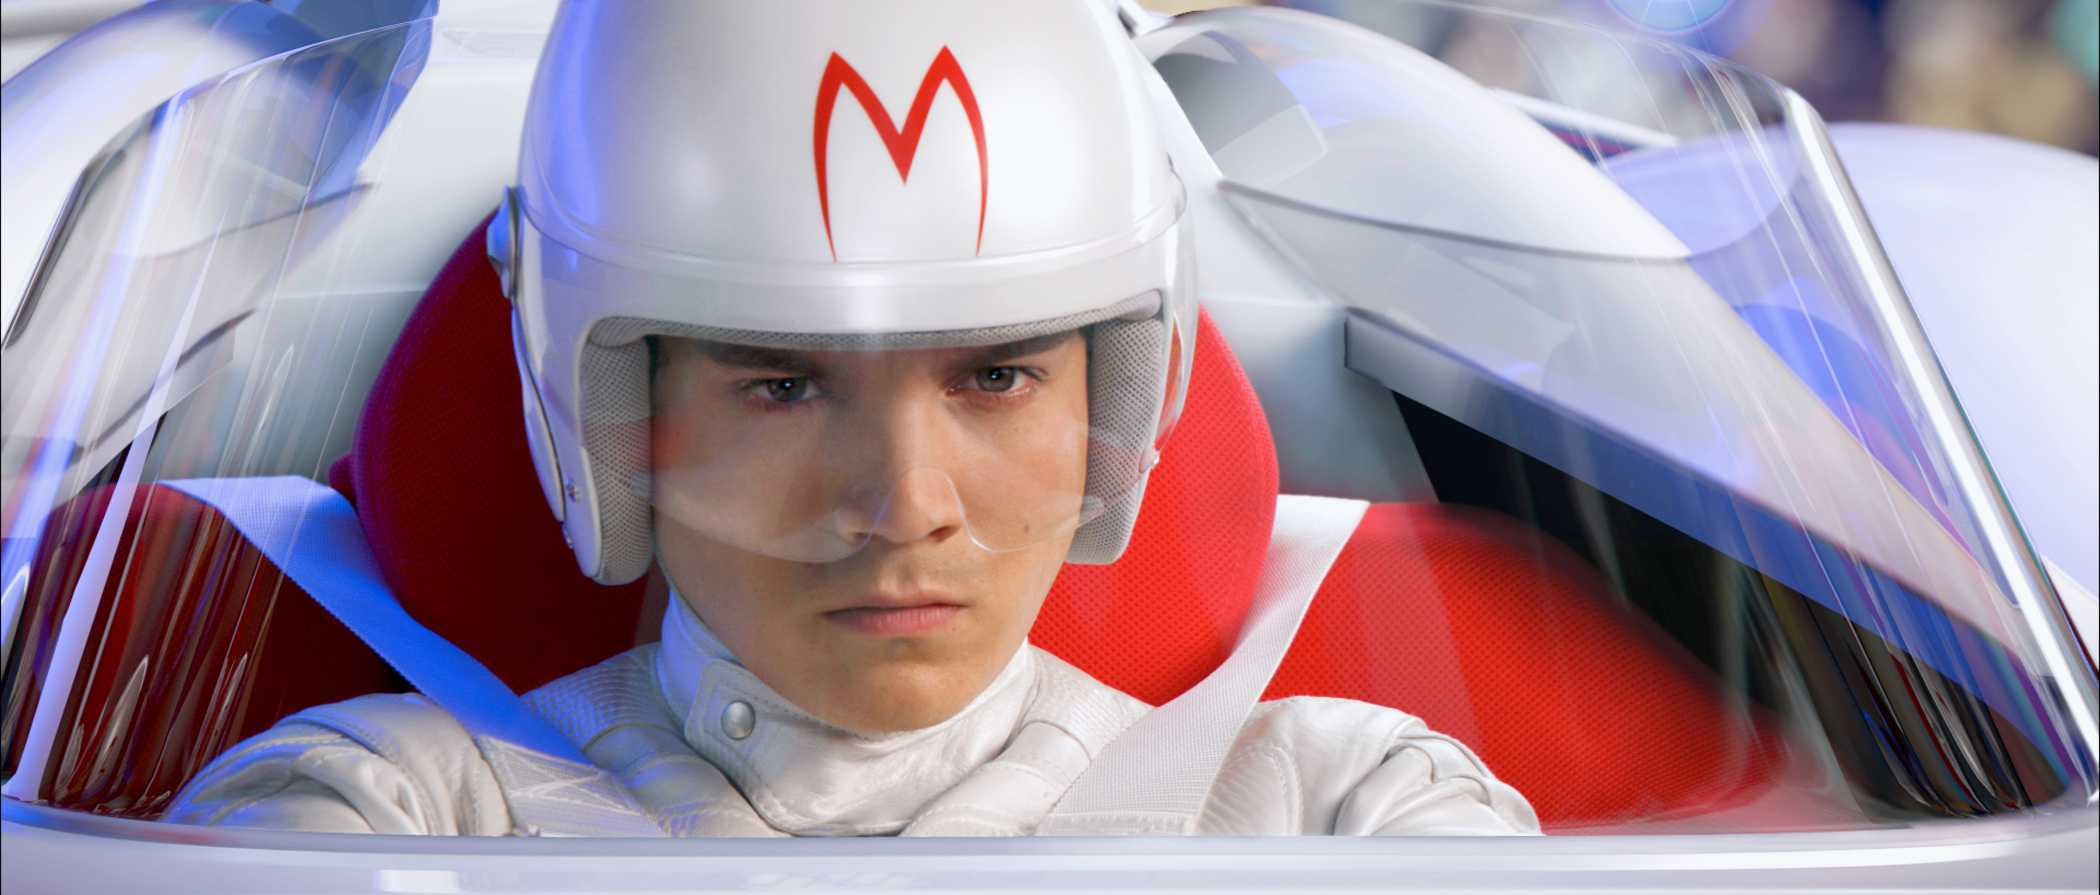 Speed Racer Movies Movie HD Wallpaper